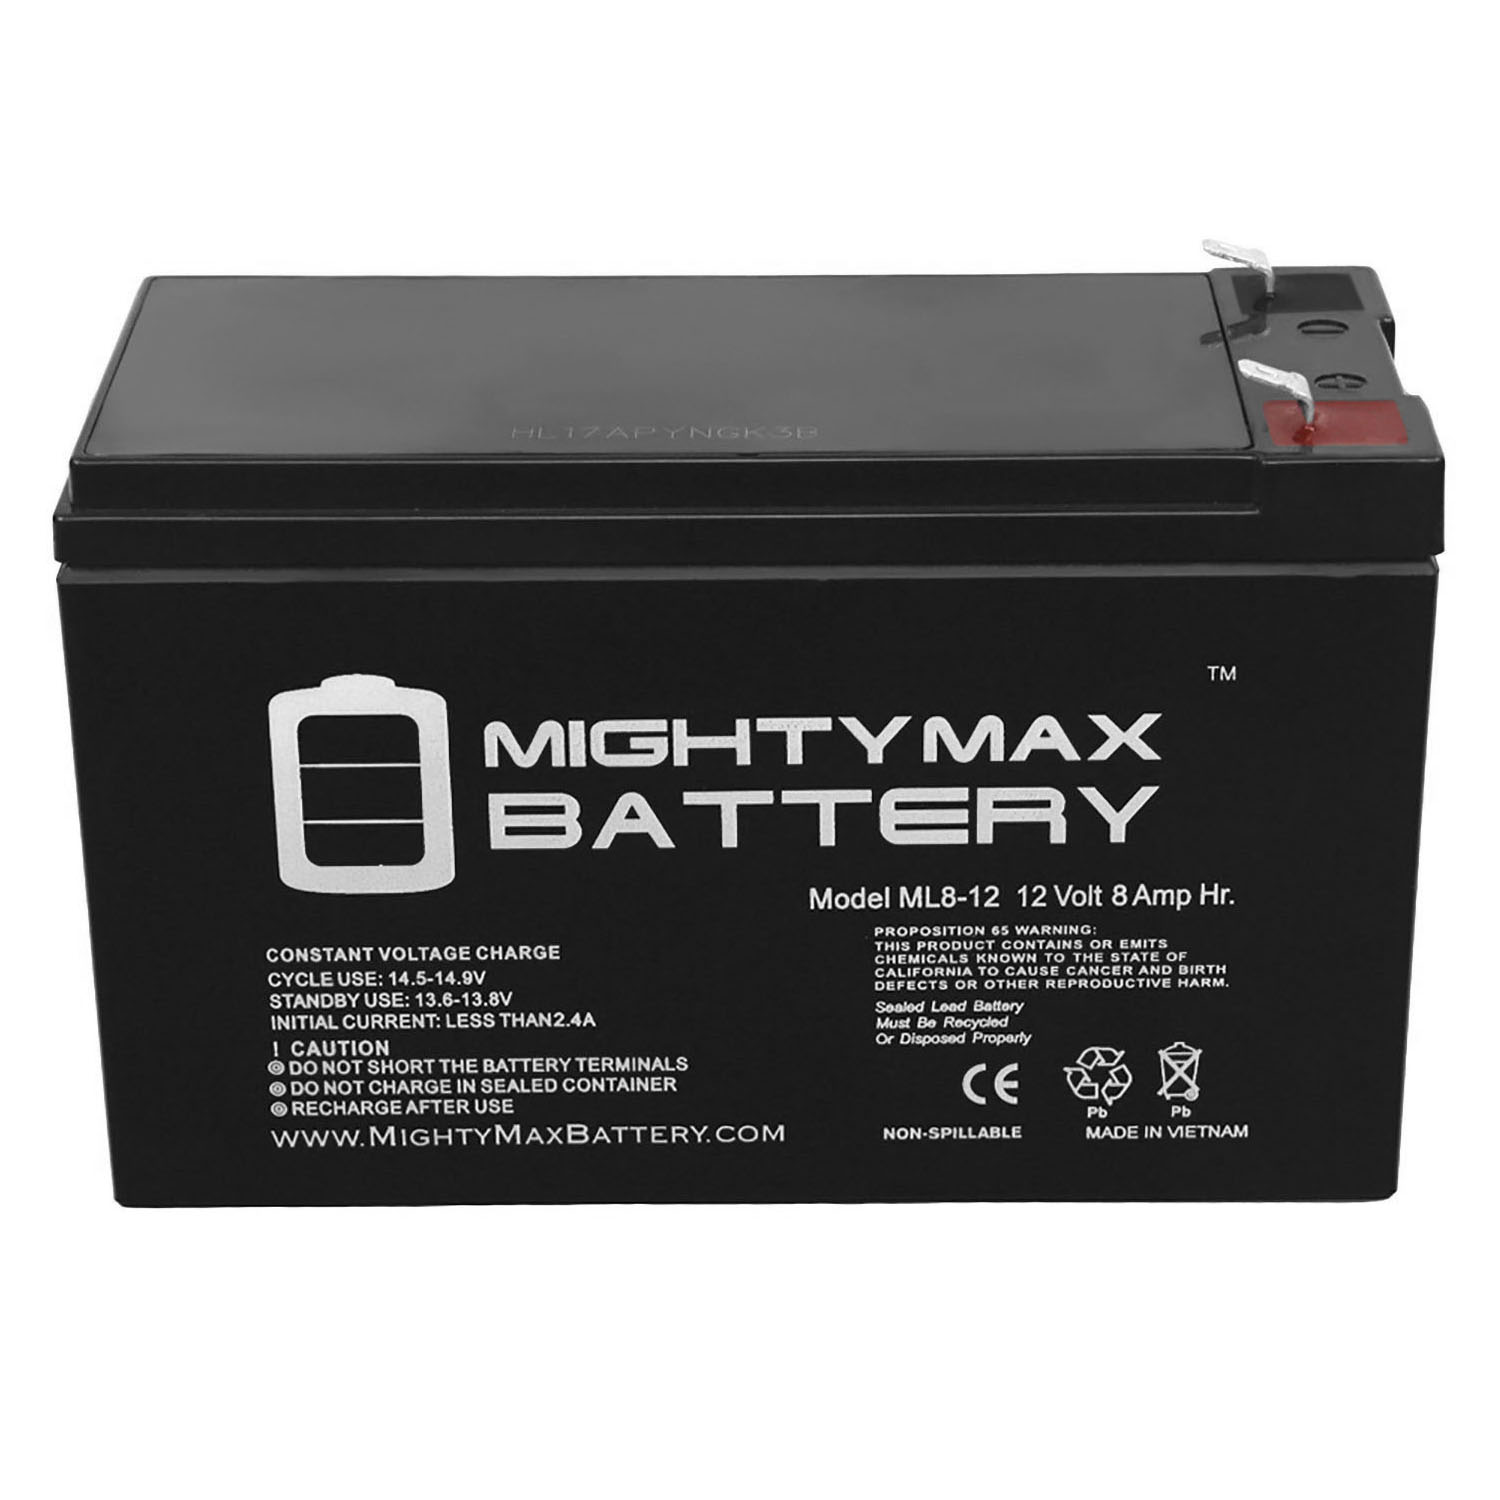 Mighty Max Battery 12V 9Ah SLA Battery Replacement for Minuteman ETR700P15-6 Pack Brand Product